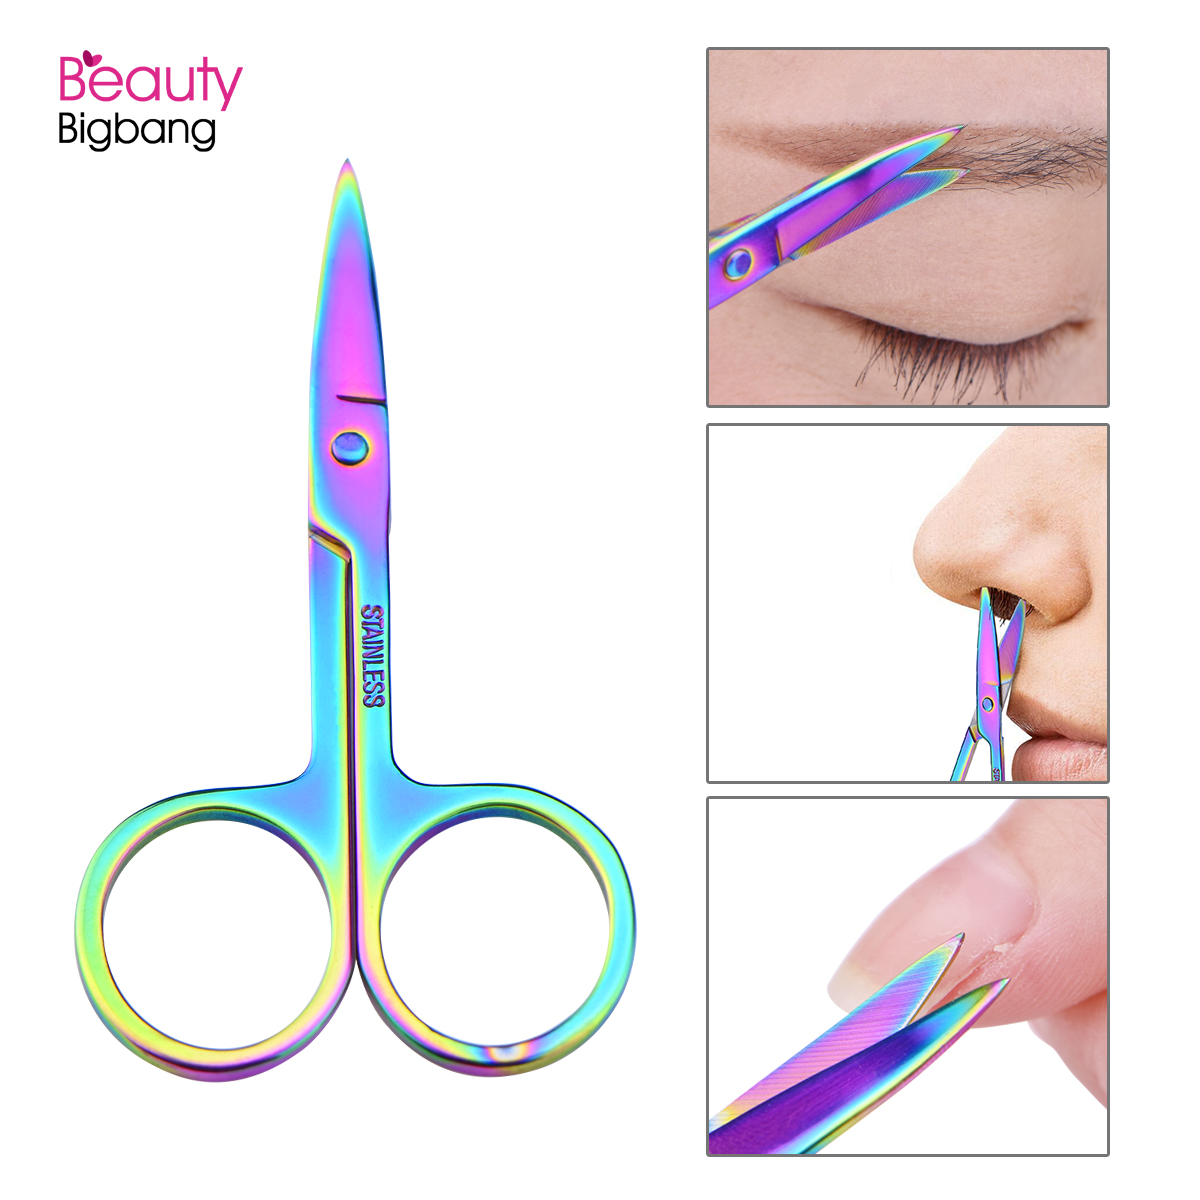 BEAUTYBIGBANG 1 Pc Chameleon Curved Head Eyebrow Scissor Makeup Trimmer Facial Hair Remover Manicure Scissor Nail Cuticle Tool